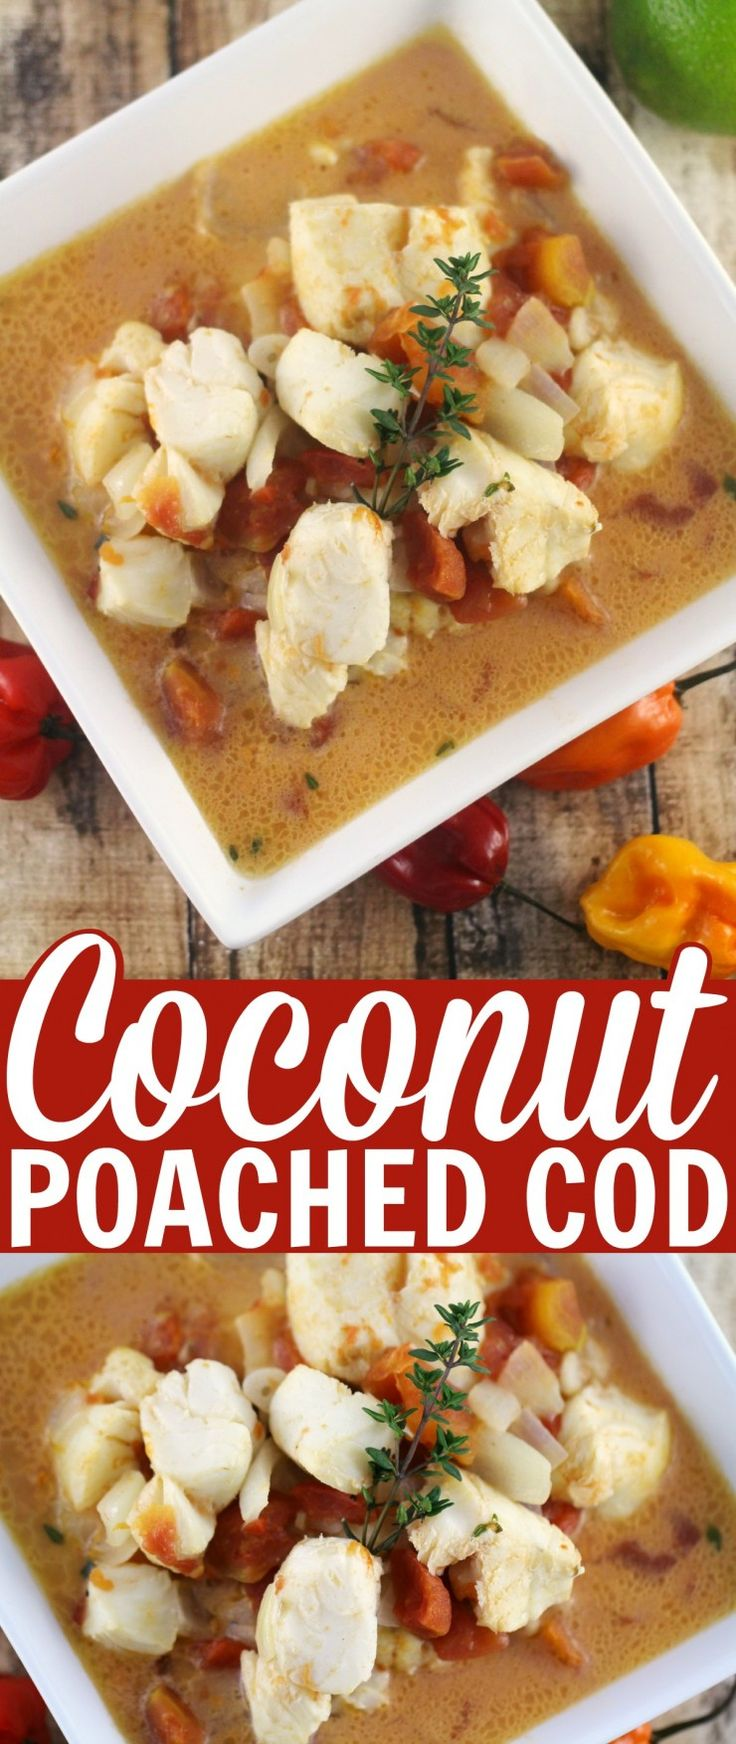 """This coconut poached cod is inspired by Jamaican """"Rundown"""" - Thai Kitchen Coconut Milk makes this recipe quick and easy-to-make."""